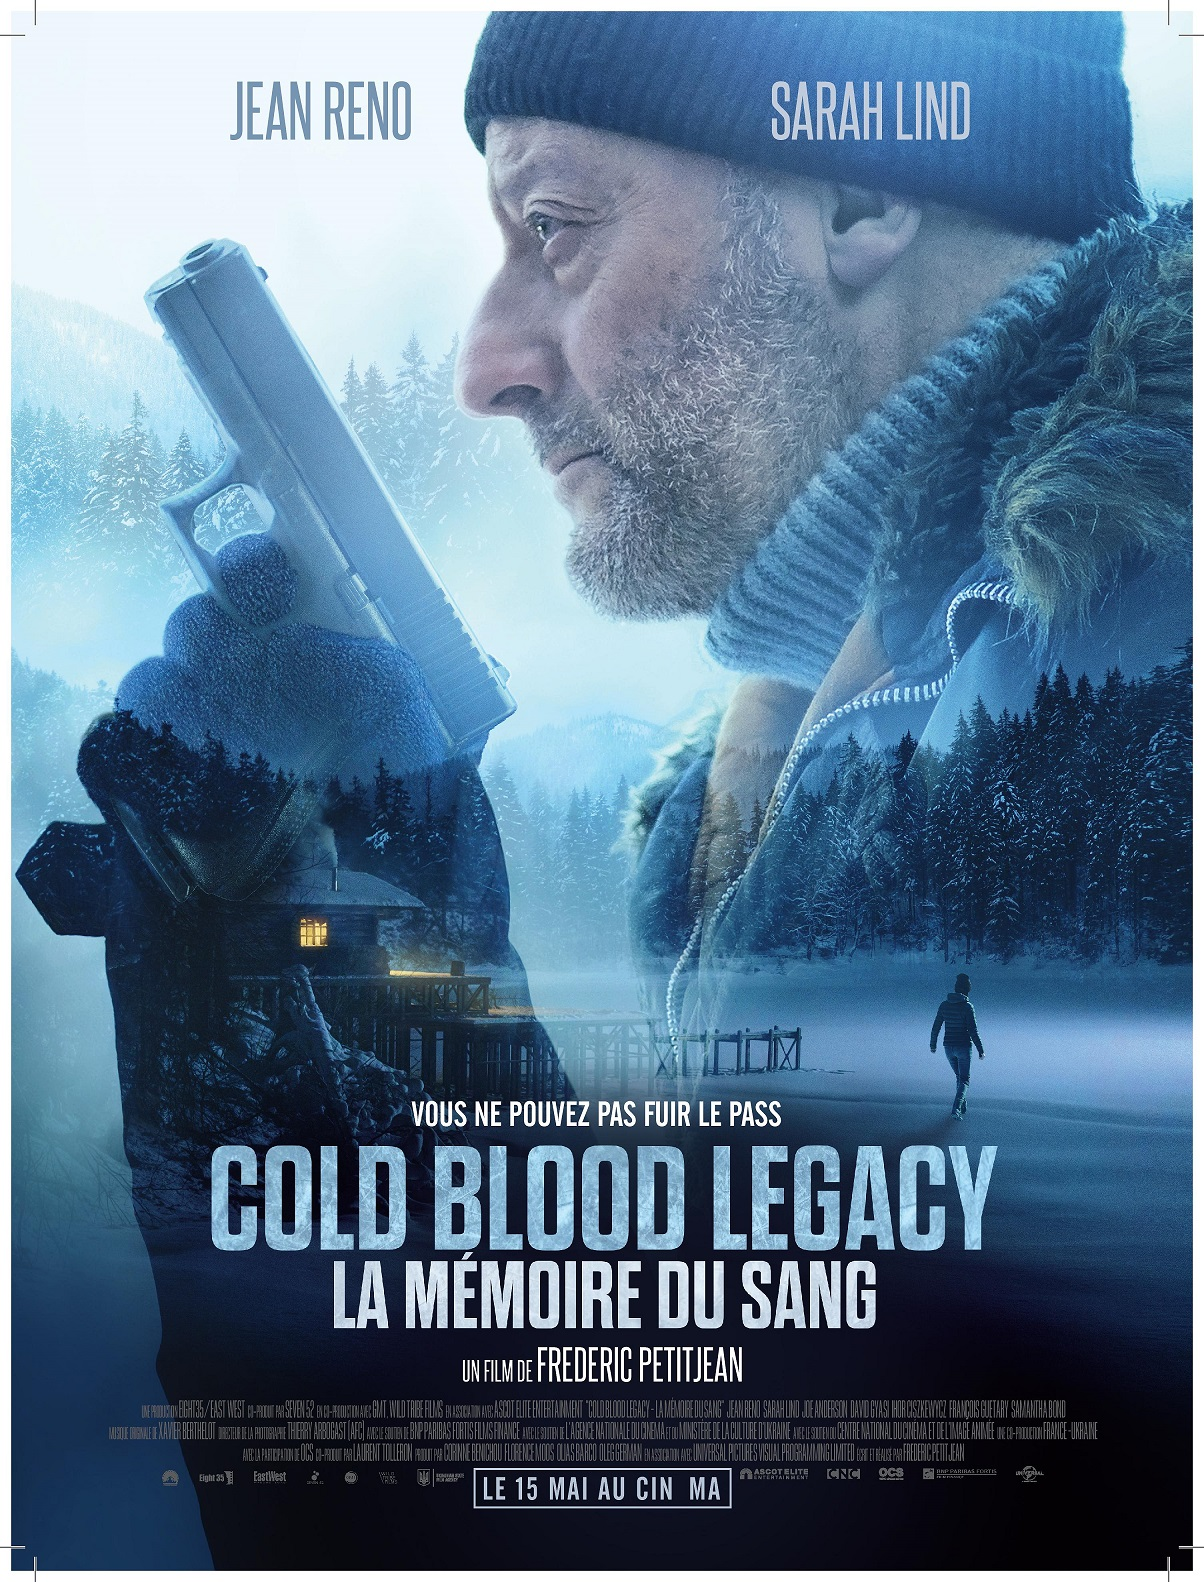 Cold Blood Legacy Jean Reno Poster